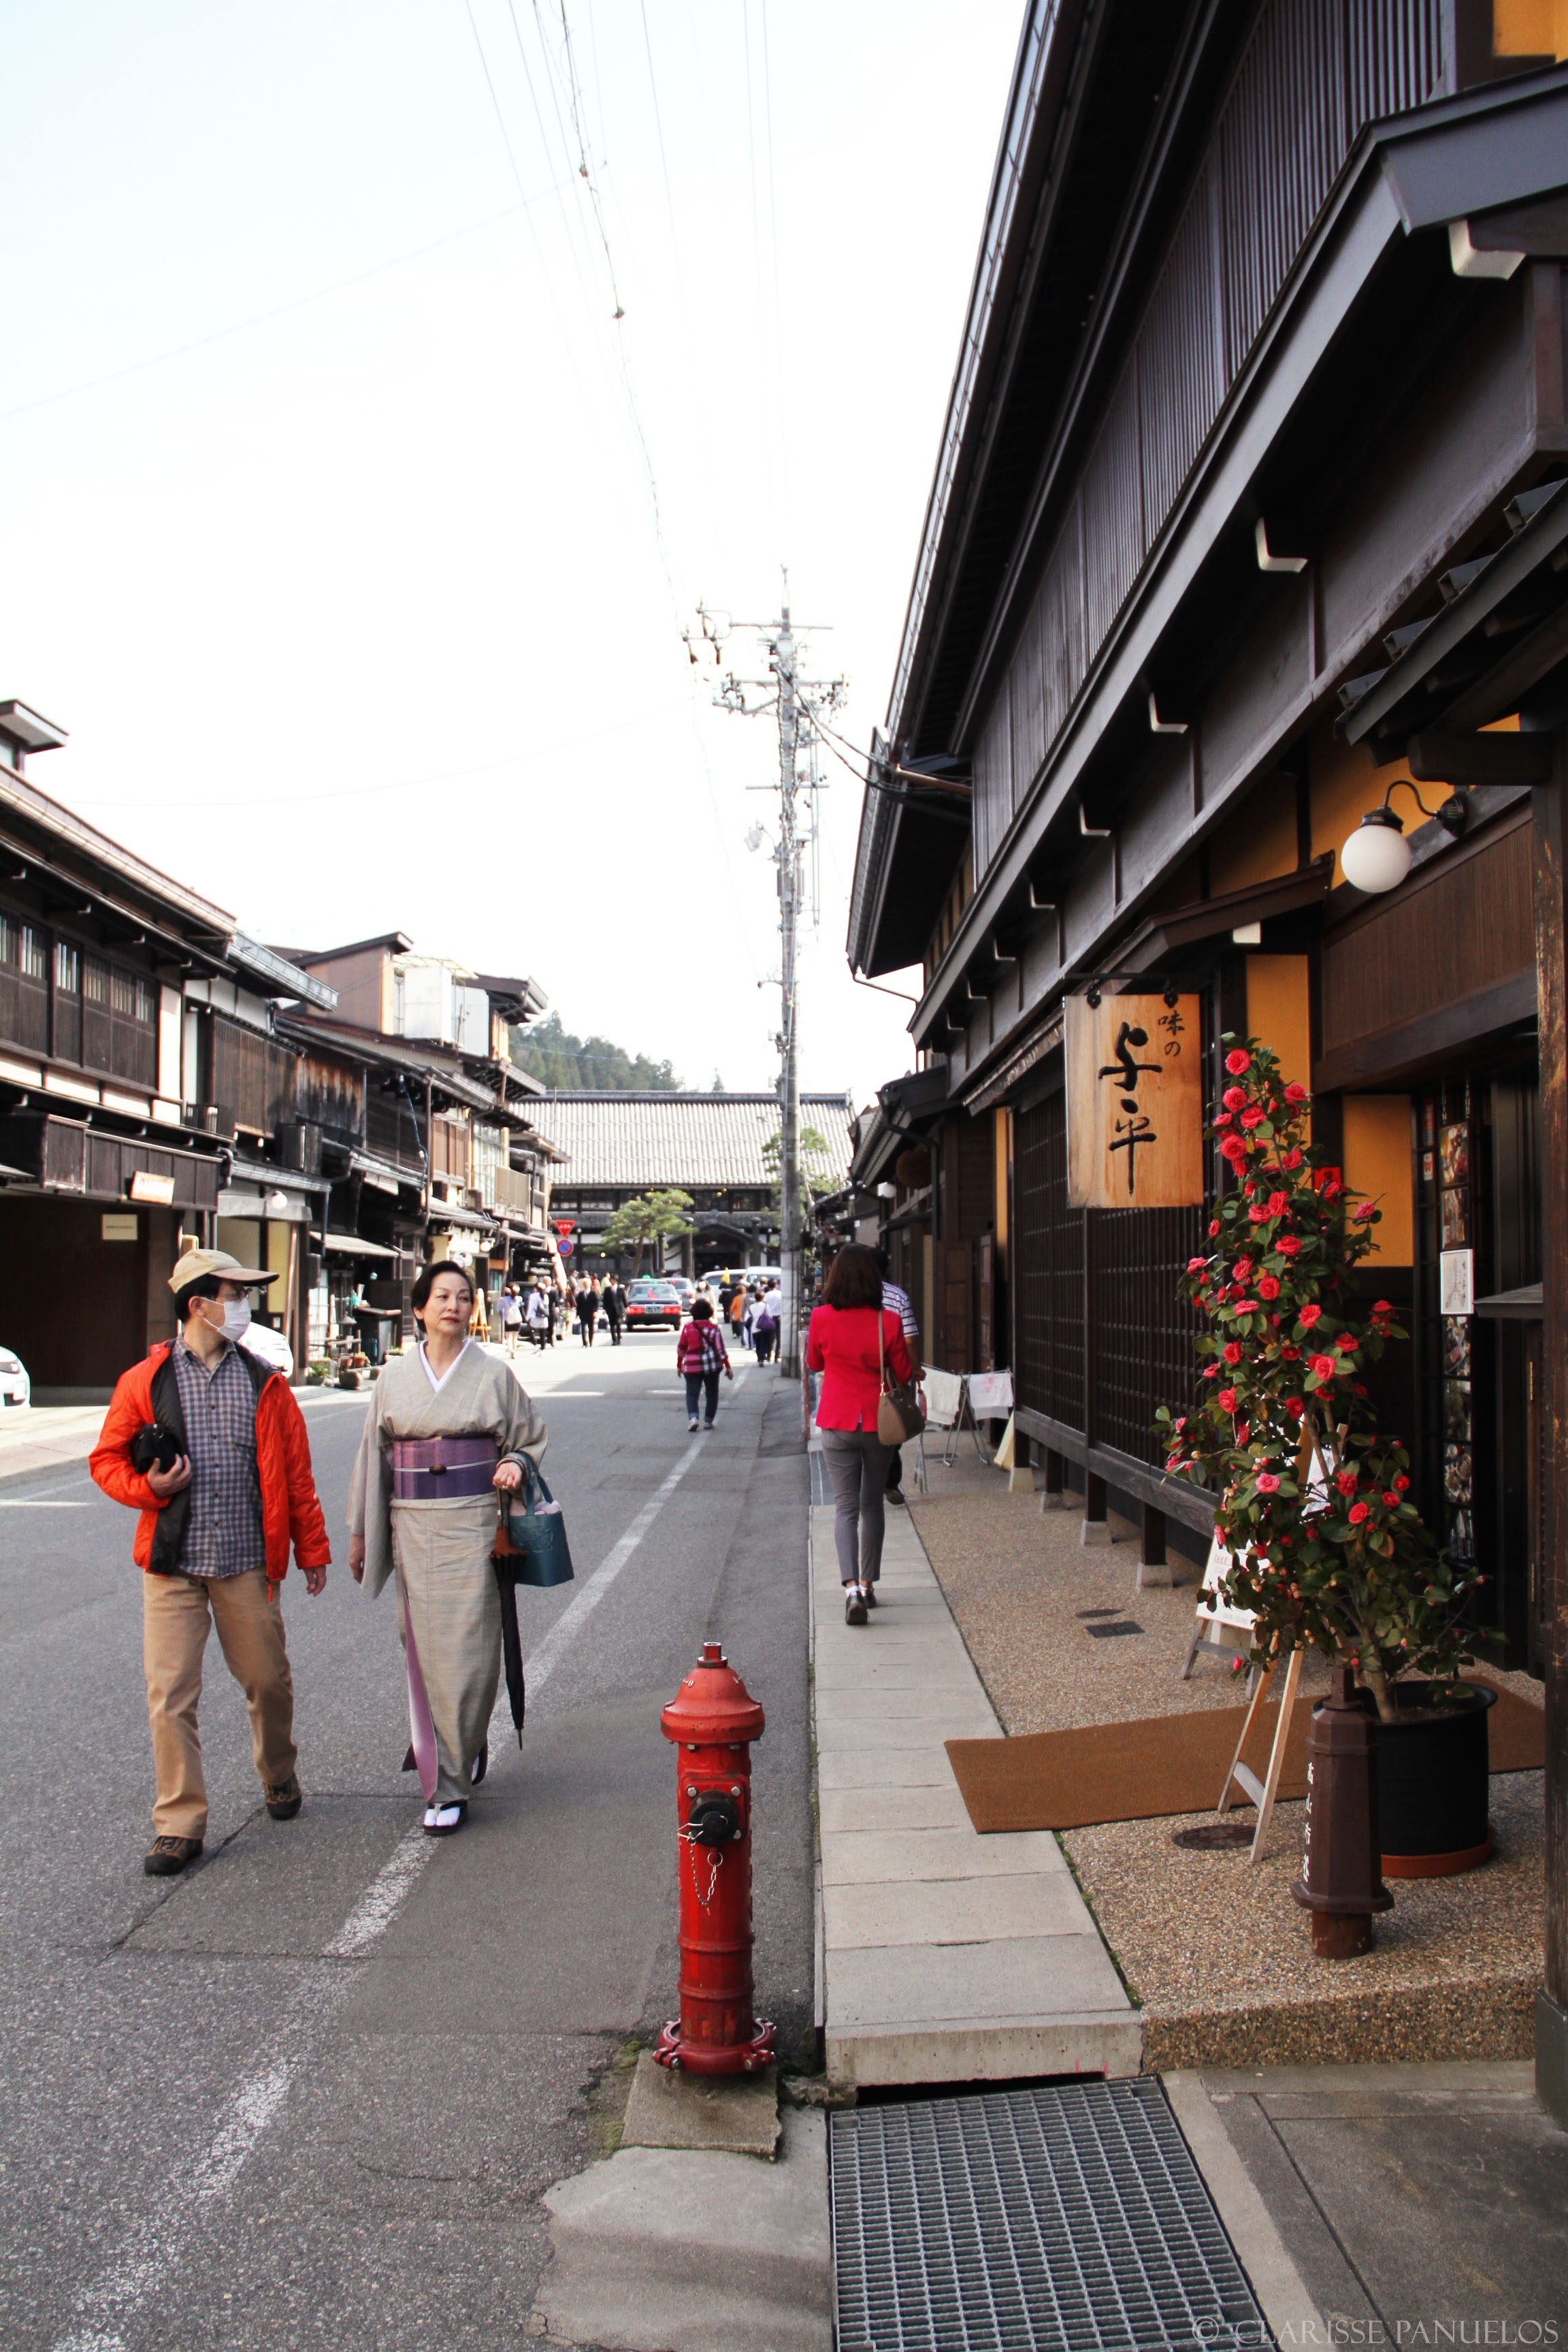 Takayama Old Town MAIN - Japan Travel Blog April 2015: Takayama Old Town